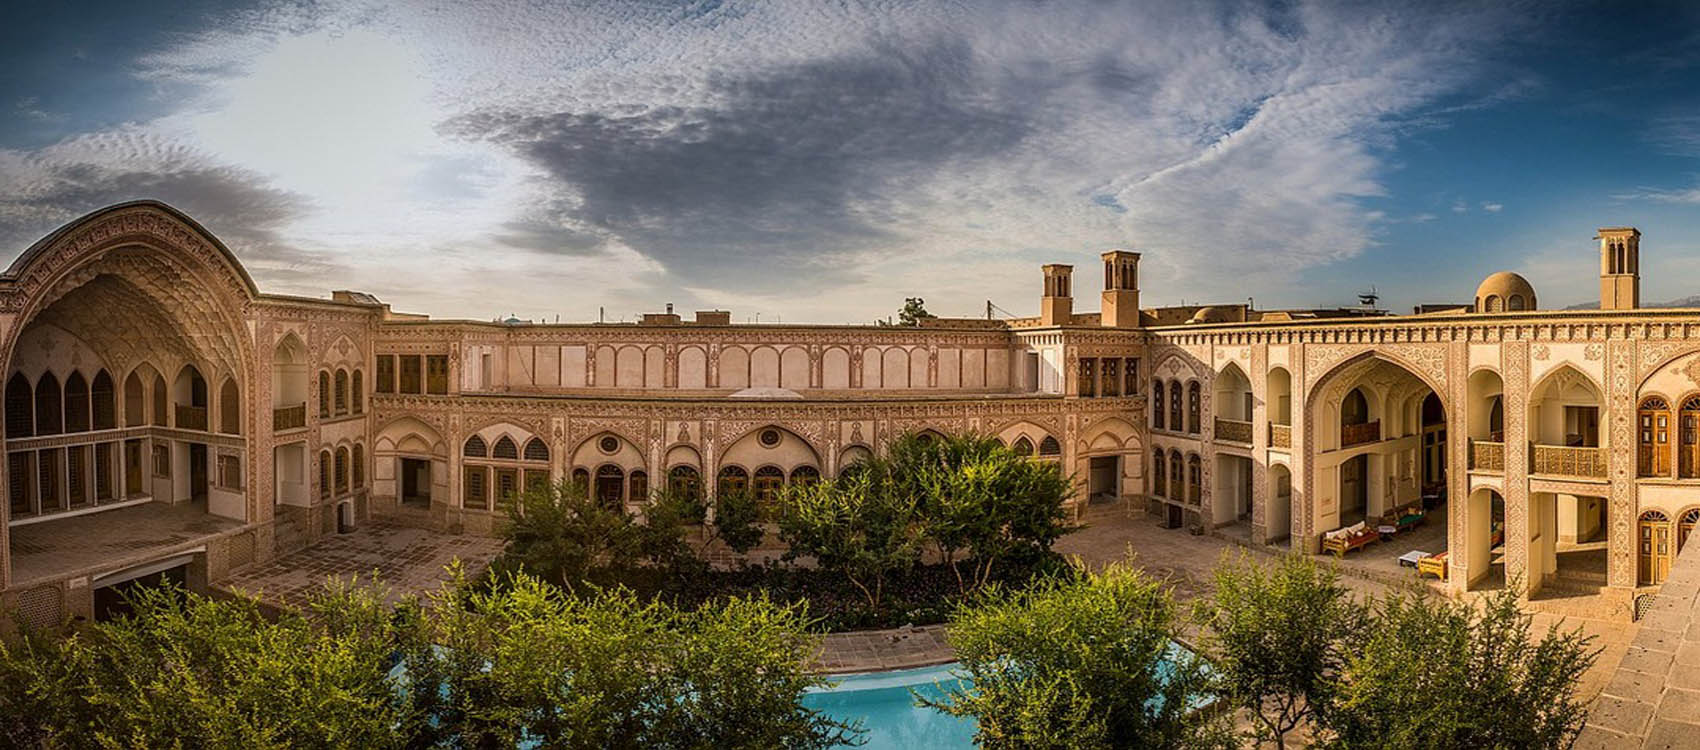 Amerian House,Kashan,Iran Attraction,attraction in Kashan,Iran tour packages,Iran welcomes you,Iranian tour operator,Trip to Persia